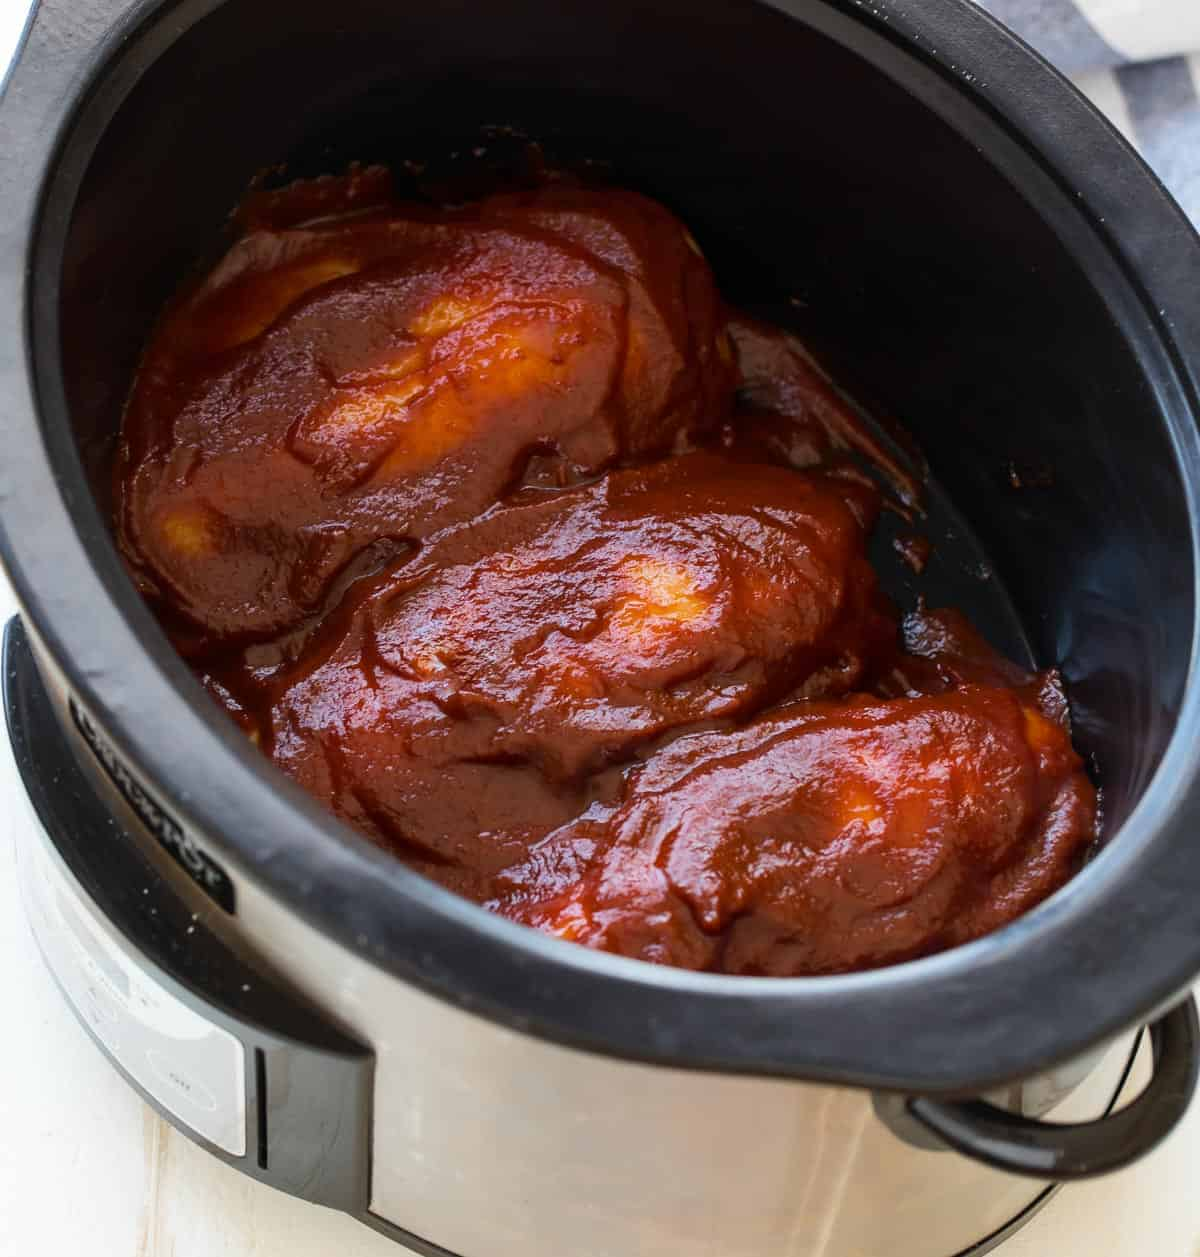 Chicken breasts in a slow cooker with BBQ sauce